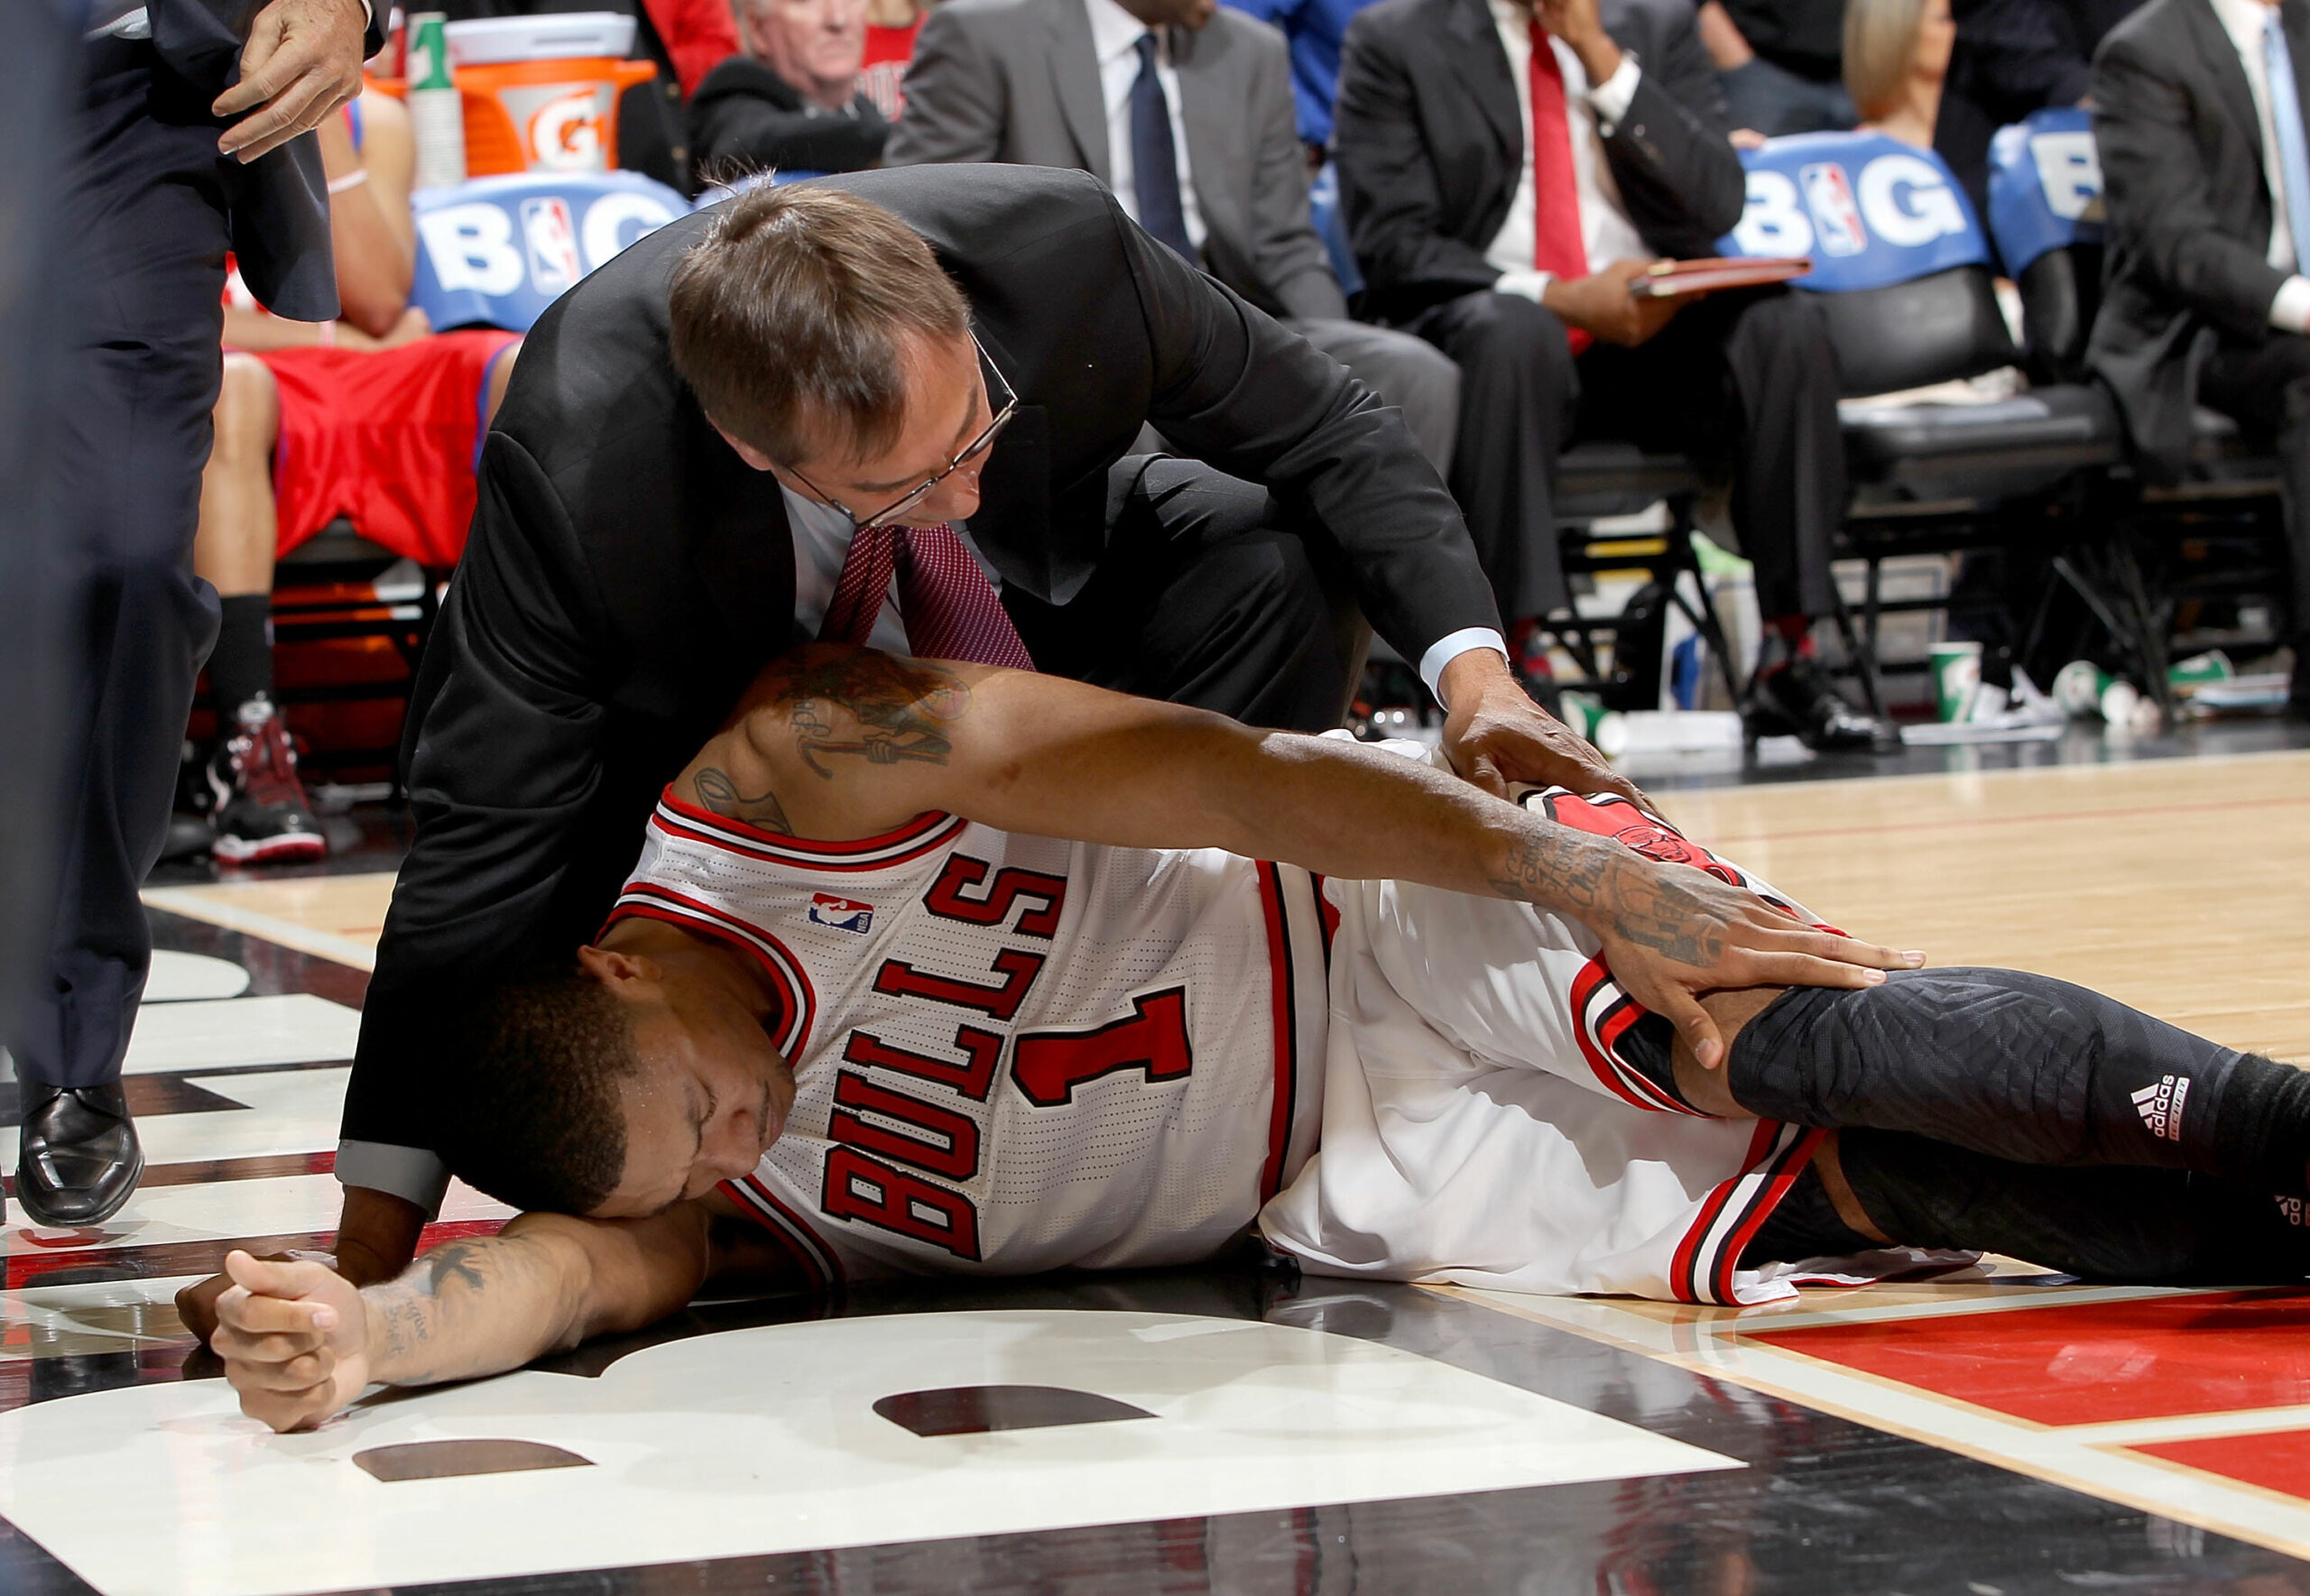 Chicago Bulls Head Athletic Trainer Fred Tedeschi assists Derrick Rose #1 after injuring his knee against the Philadelphia 76ers in Game One of the Eastern Conference Quarterfinals during the 2012 NBA Playoffs on April 28